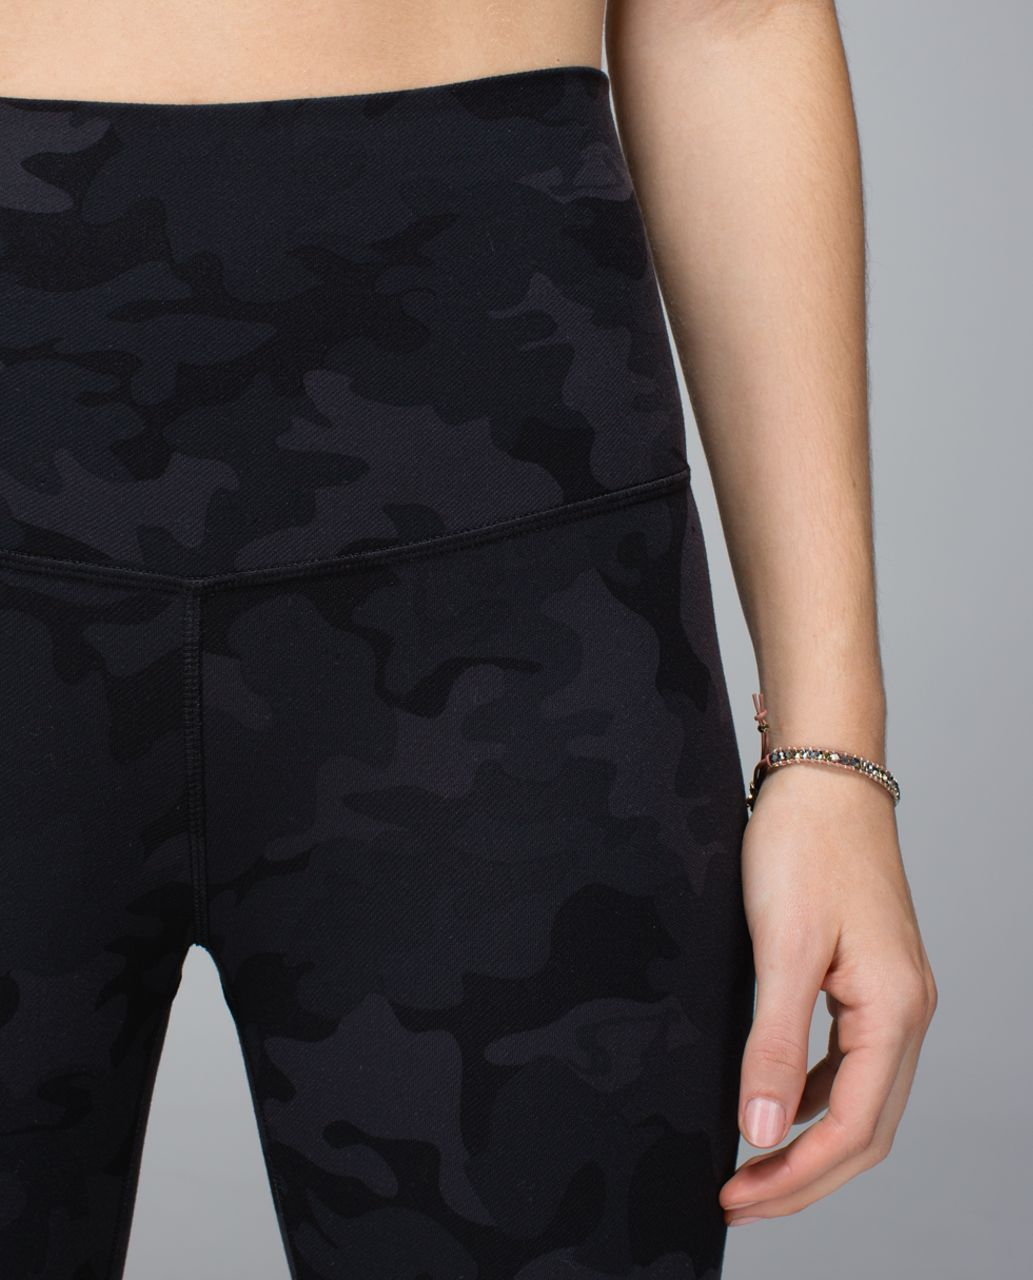 Lululemon Wunder Under Crop (Roll Down) - Savasana Camo 20cm New Black / Soot